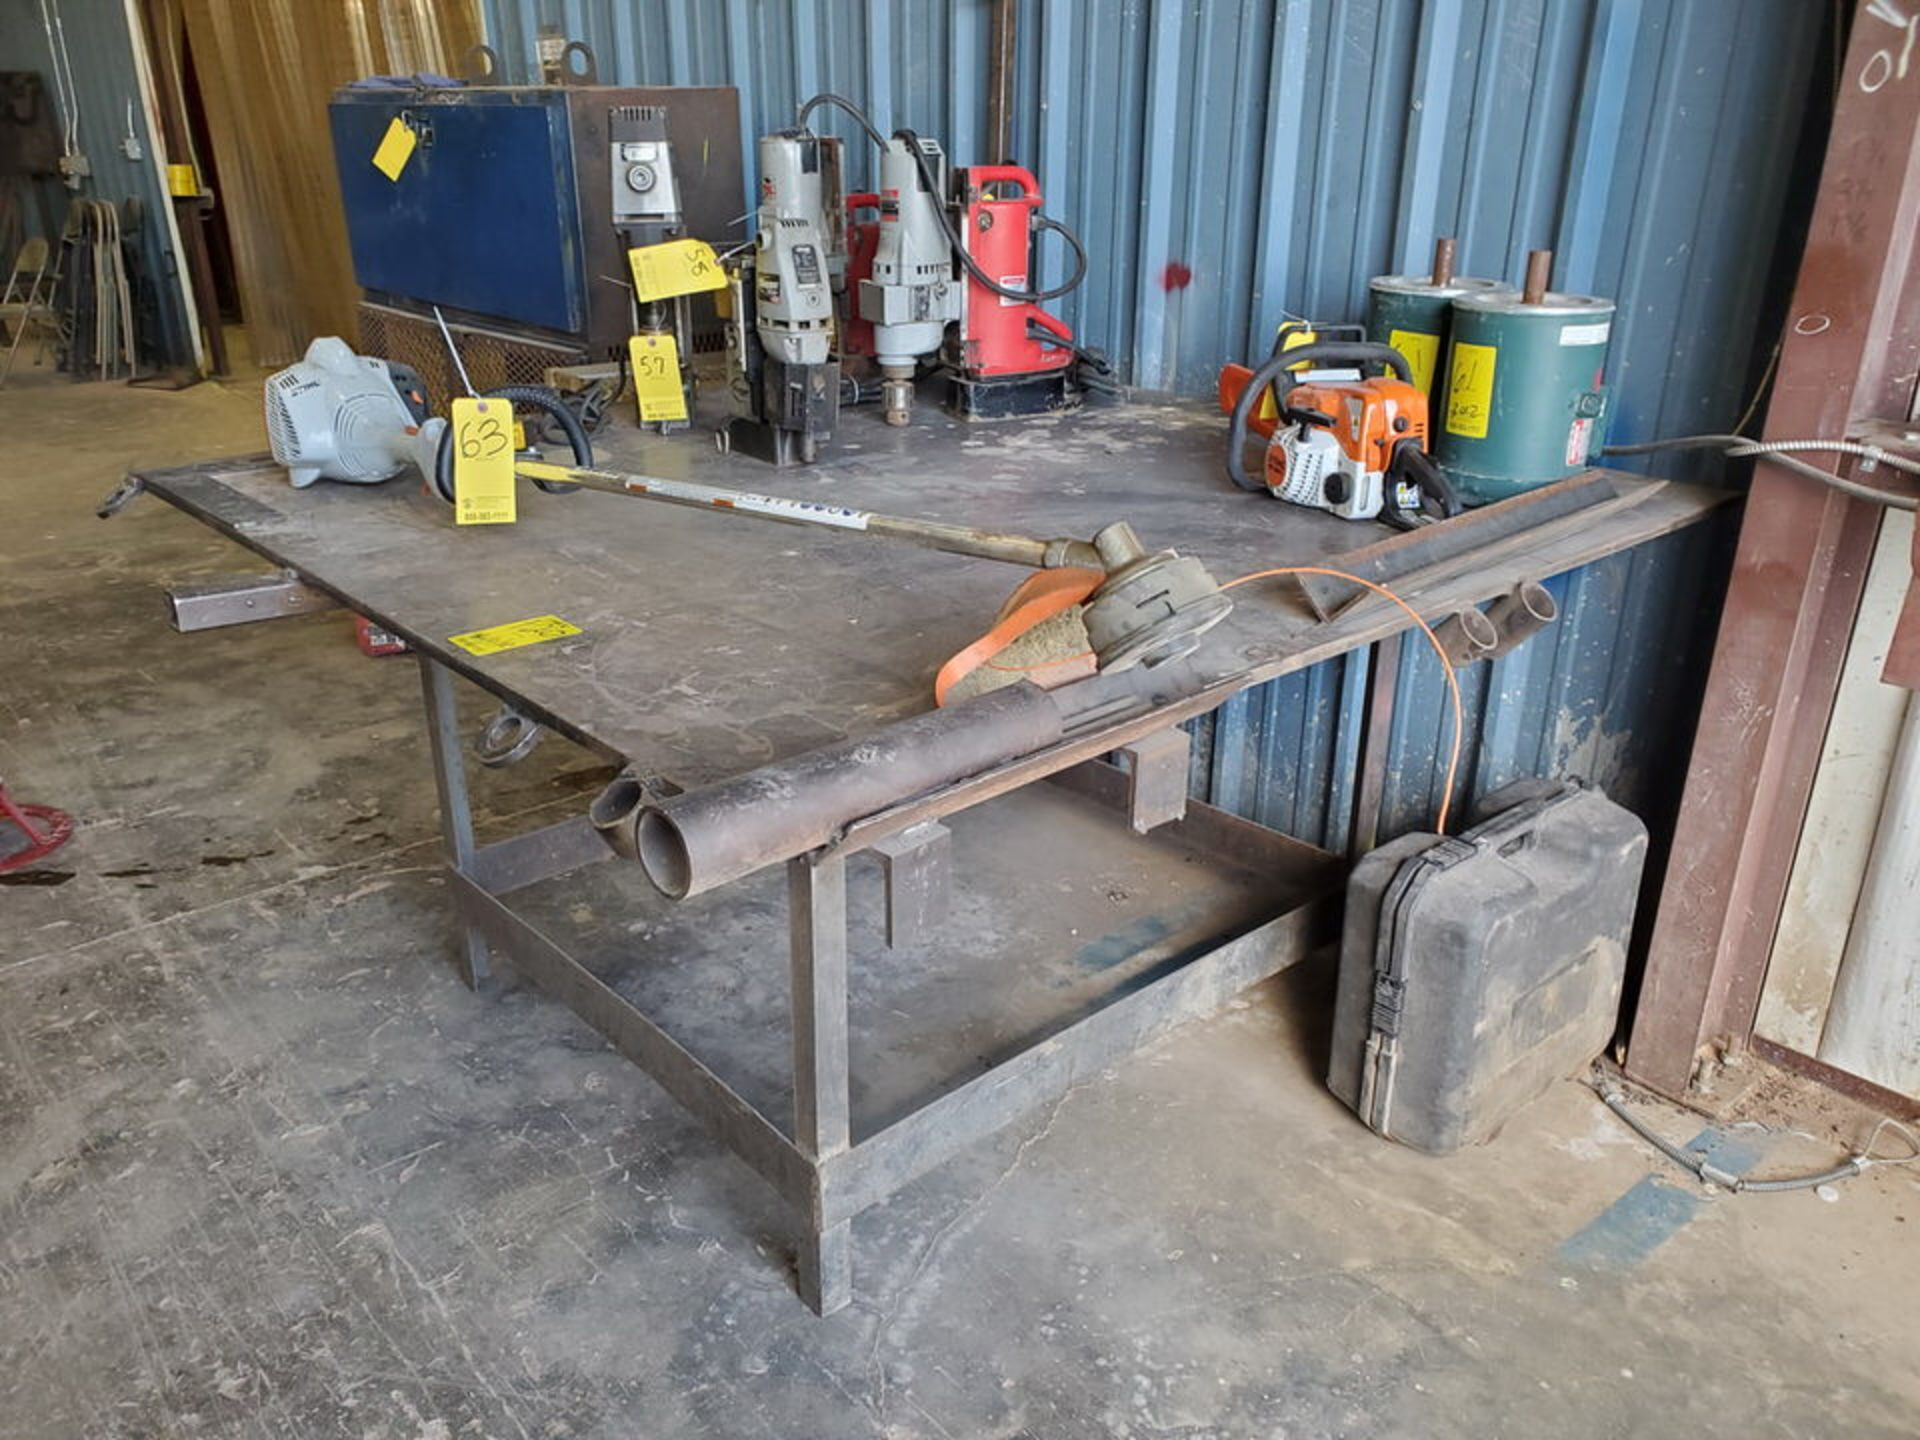 """(2) Stl Welding Tables (1) 72"""" x 72"""" x 37'H; (1) 51"""" x 54"""" x 37""""H - Image 3 of 8"""